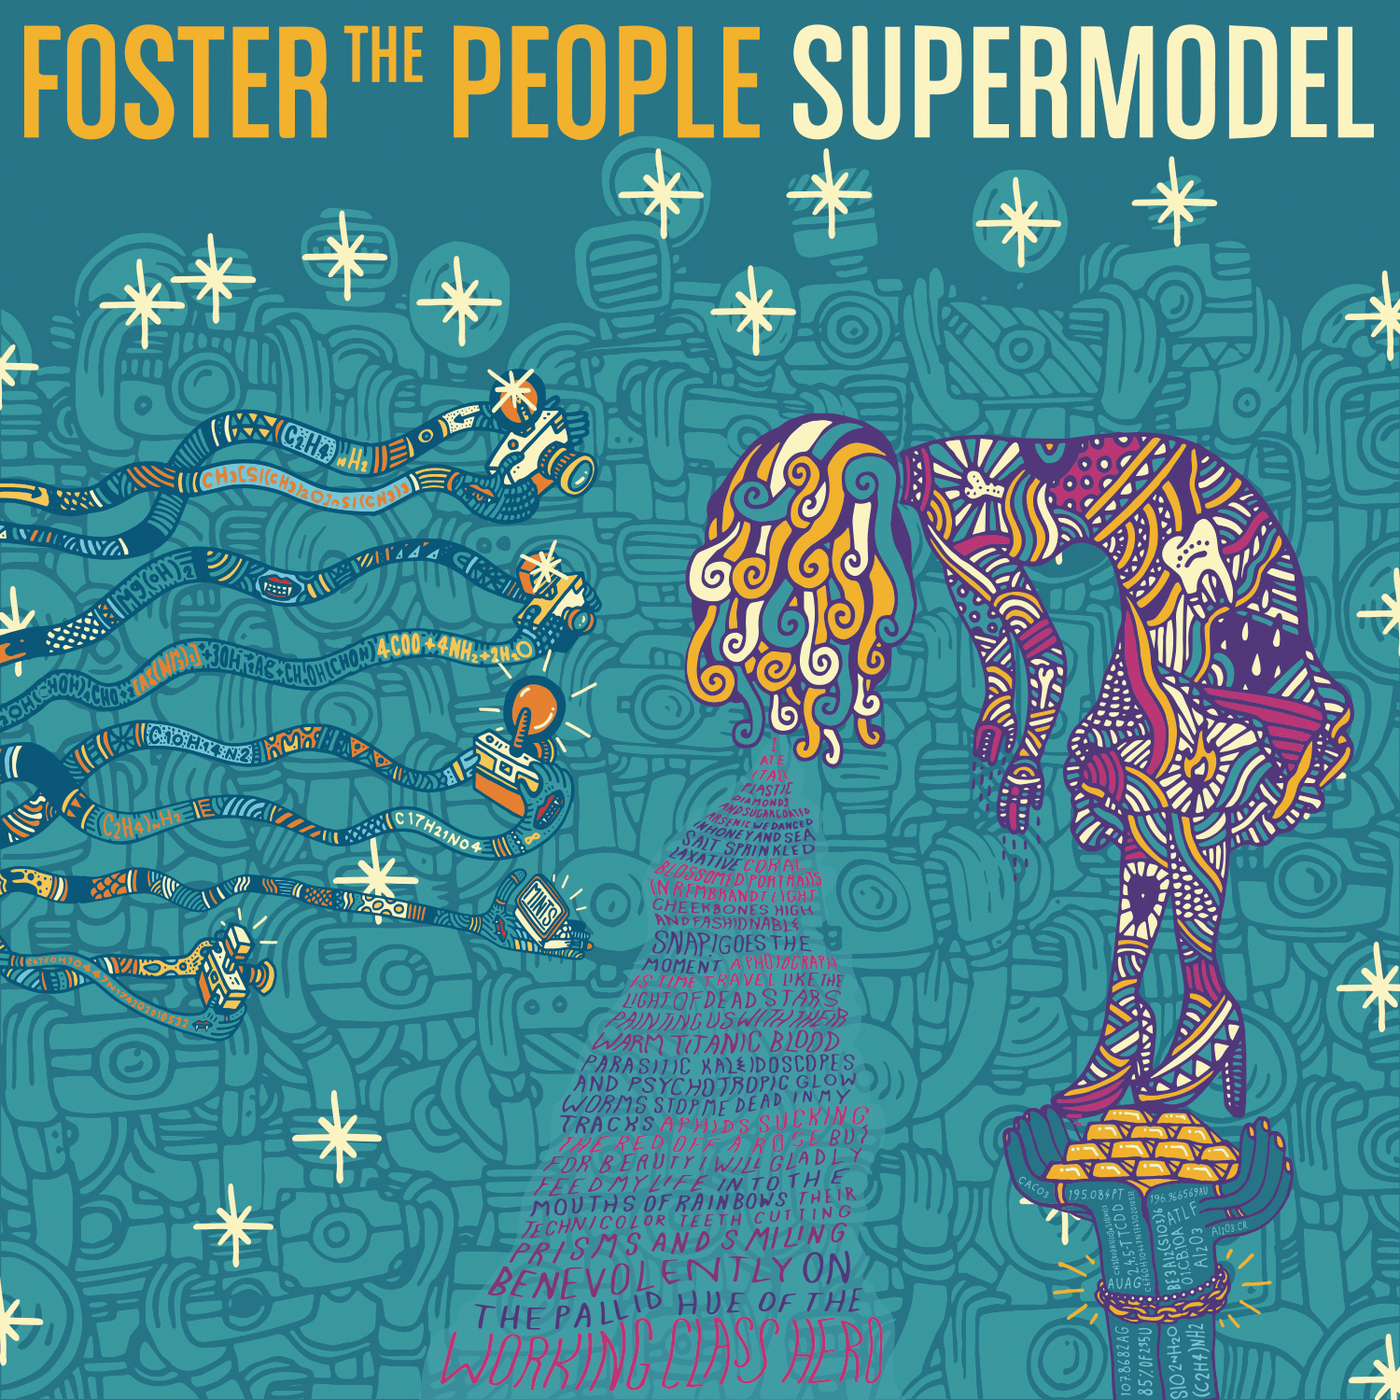 Supermodel (Expanded Edition) - Foster The People